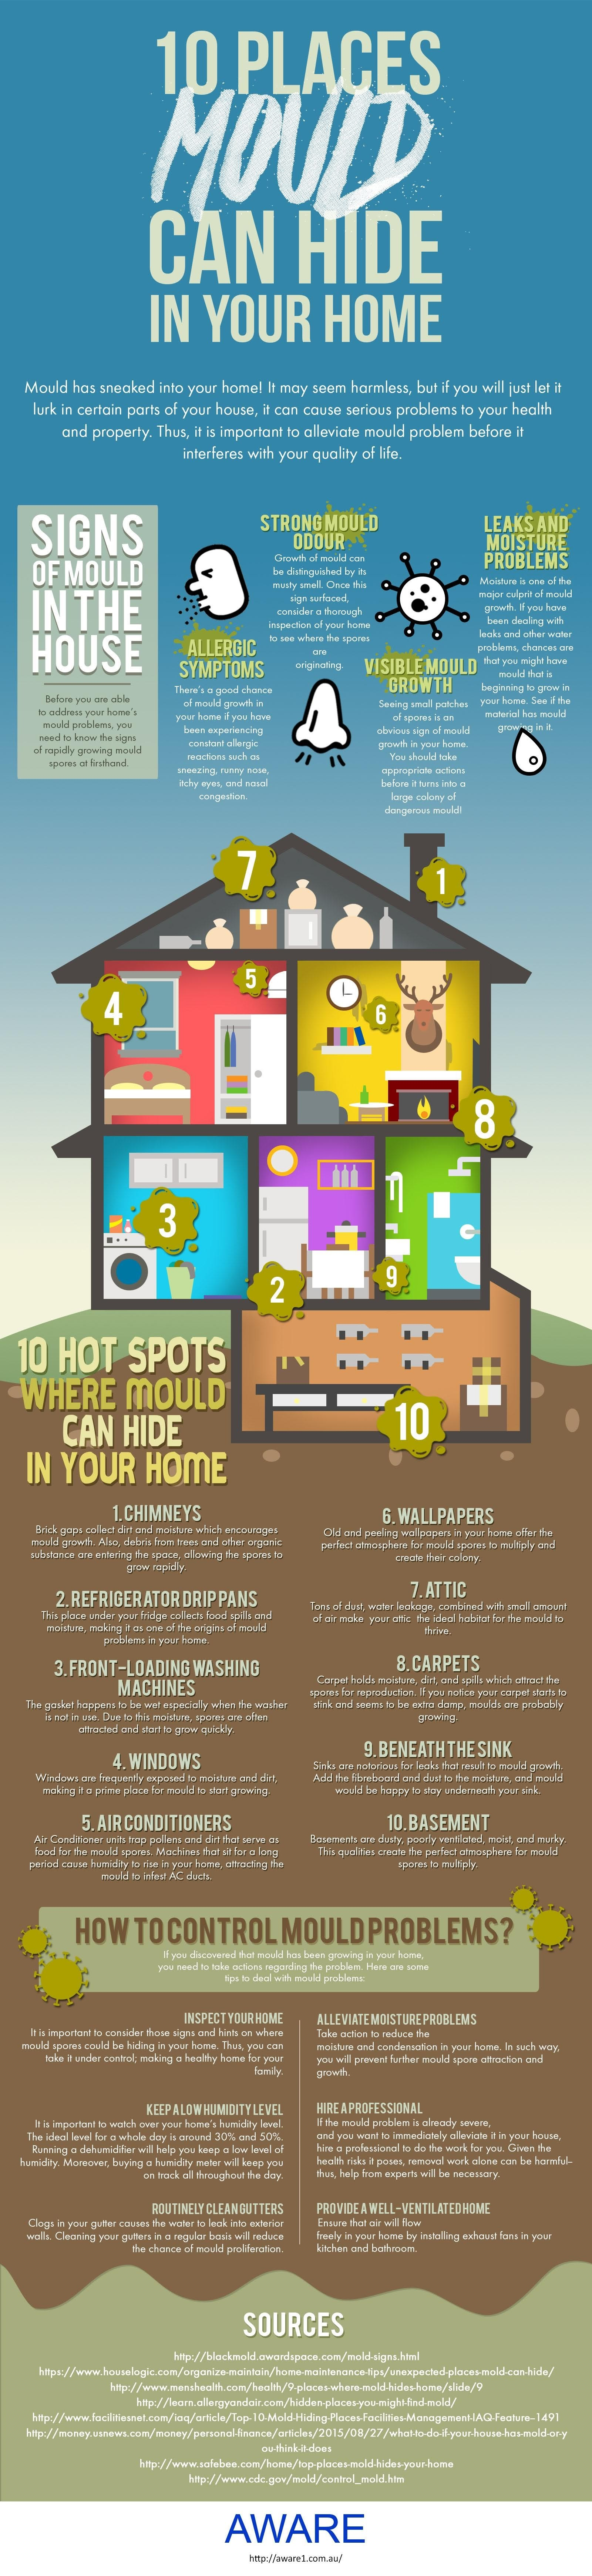 10 Places Mould Can Hide In Your Home #infographic